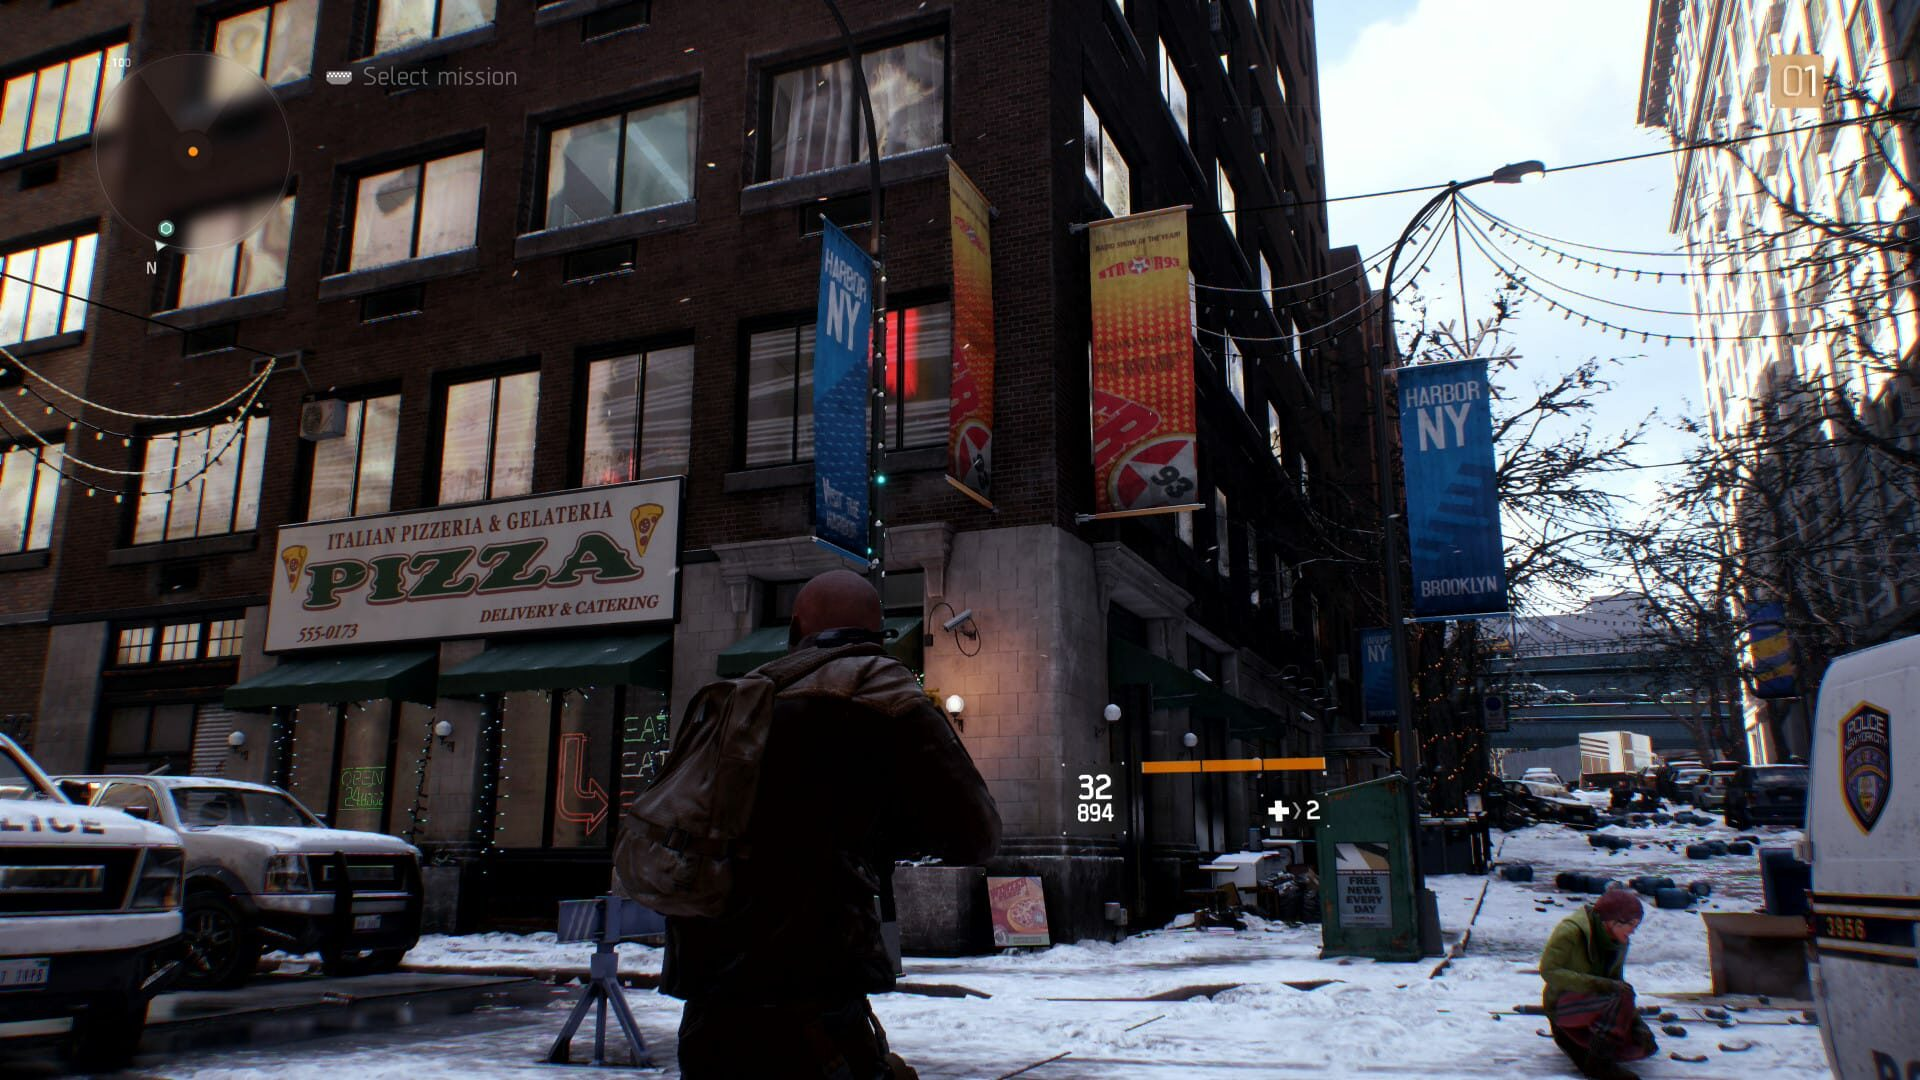 Screenshot from Tom Clancy's The Division with the character looking at a pizza shop in Brooklyn, NY.